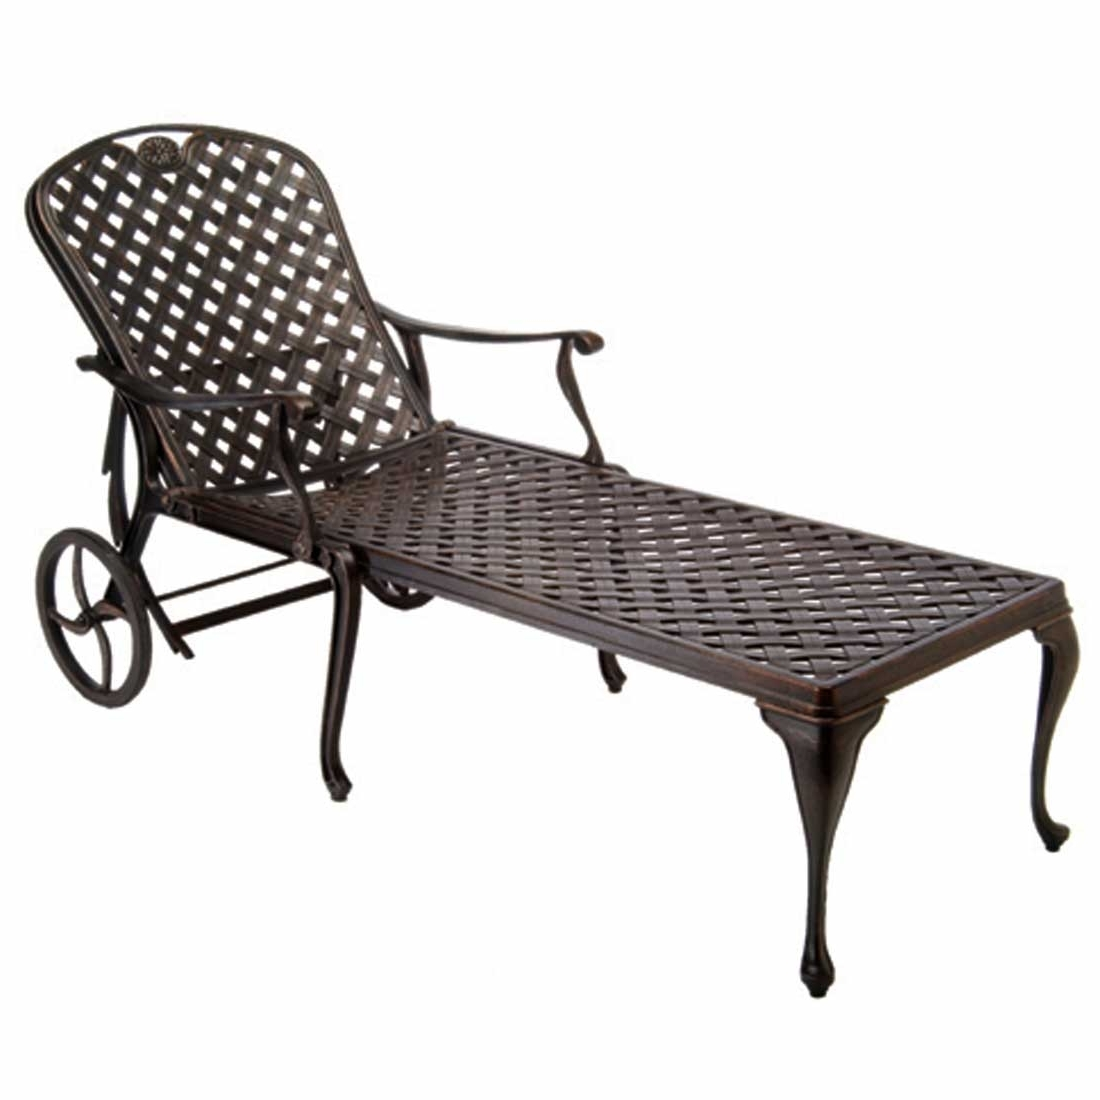 Latest Wrought Iron Chaise Lounges Within Provance Metal Chaise Lounge Chairs (View 4 of 15)